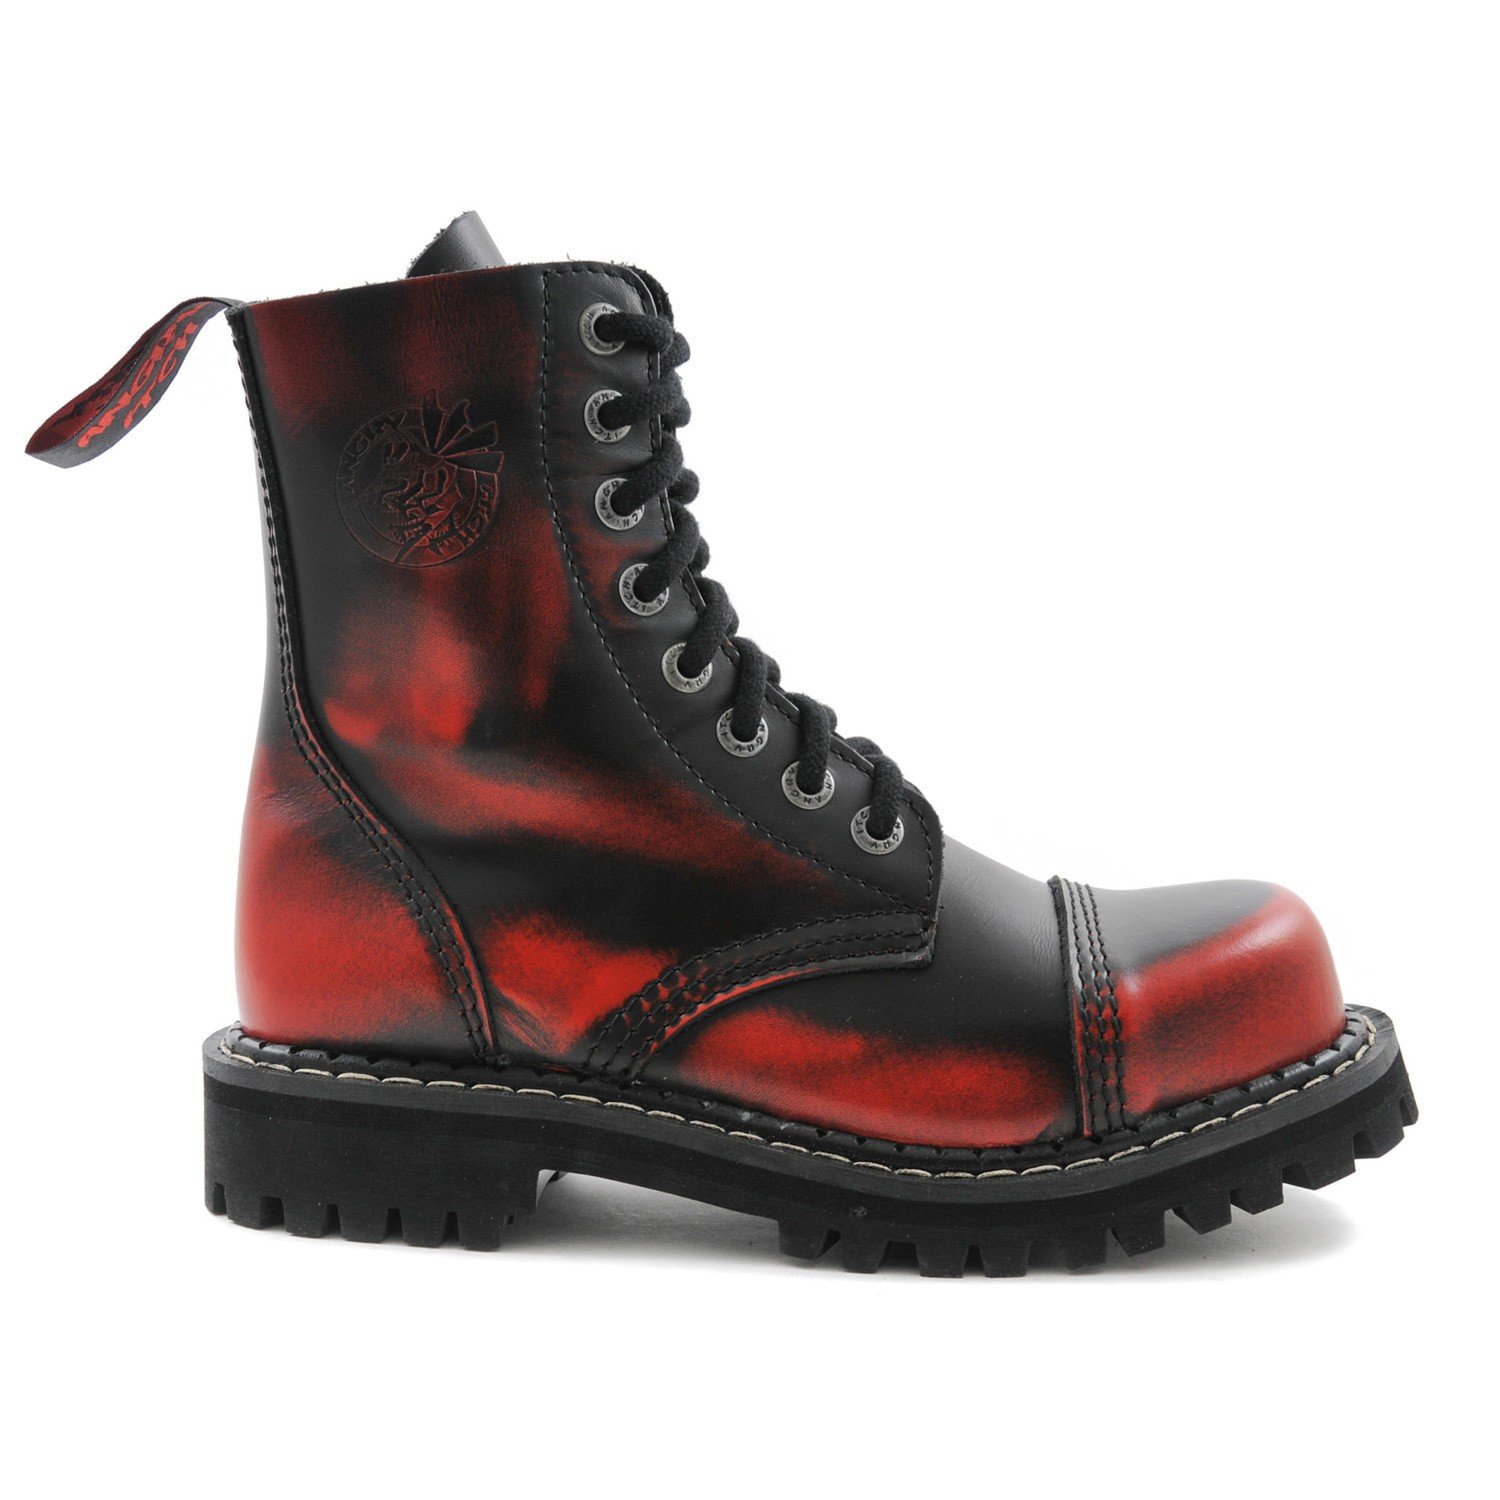 ANGRY ITCH 8-Loch Gothic Punk Army Ranger Armee Rot Rub-Off 36-48 Leder Stiefel mit Stahlkappe 36-48 Rub-Off - Made in EU! - f49dea